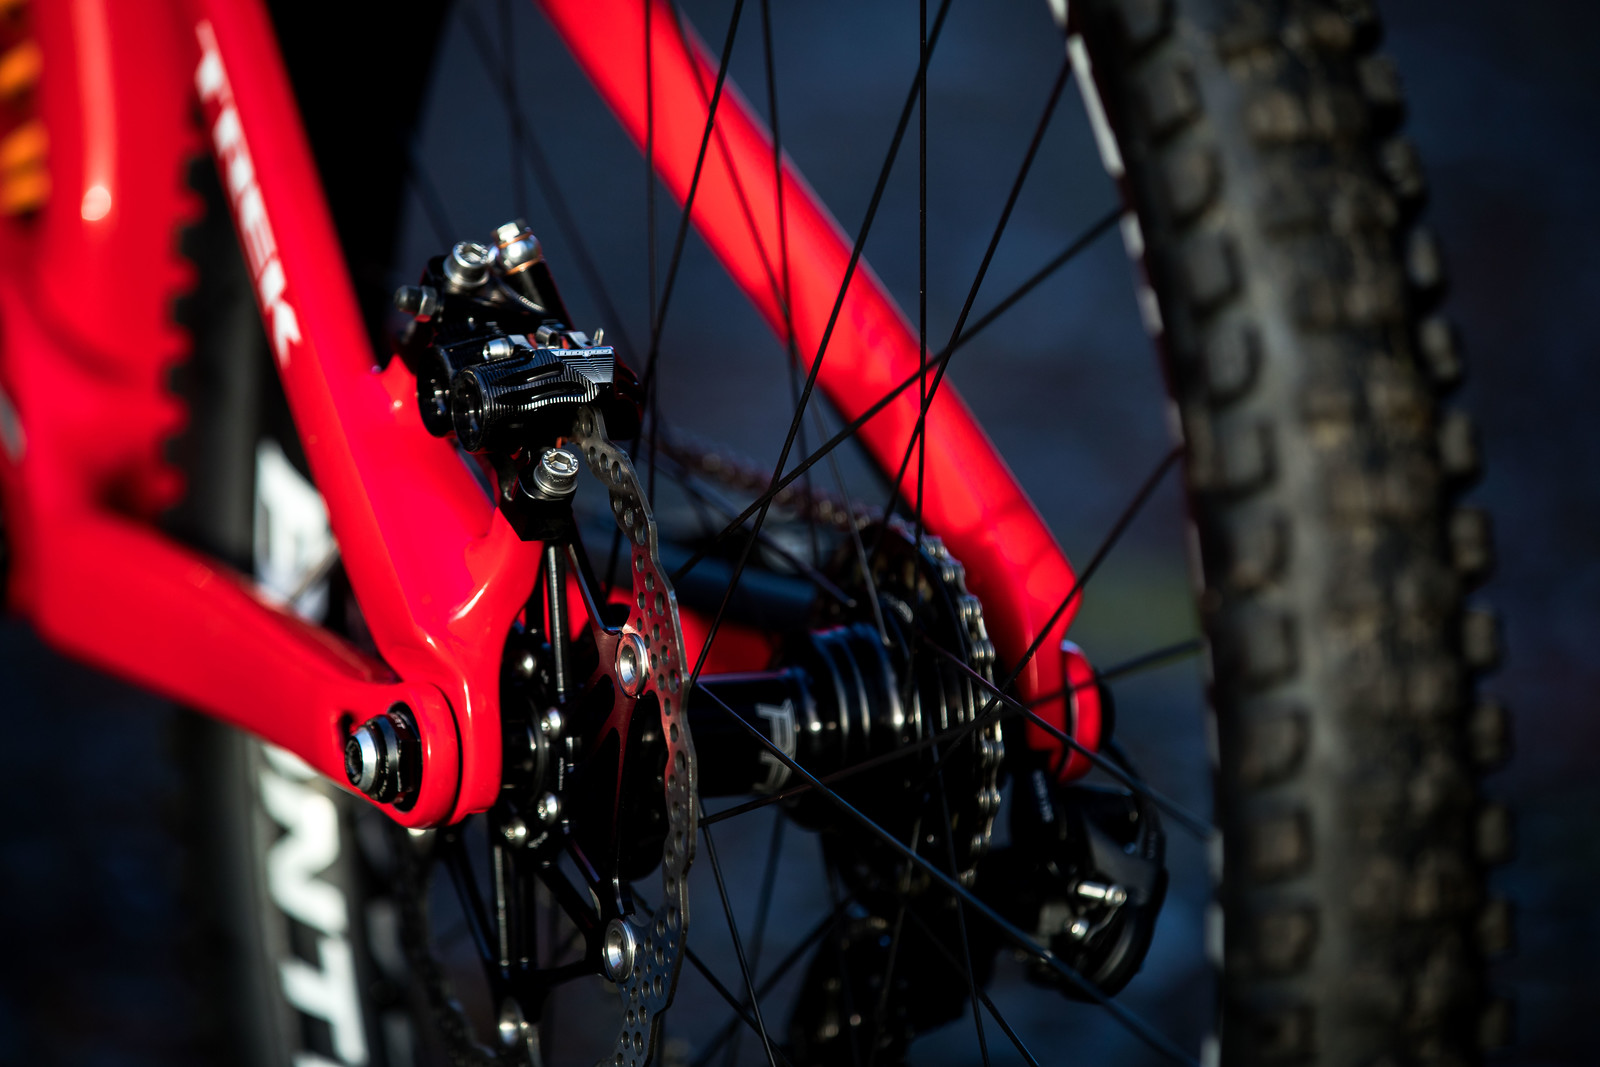 Hope Tech 3 V4 Brakes with 203mm Floating Rotors - Gee Atherton's 2018 Trek Session - Mountain Biking Pictures - Vital MTB